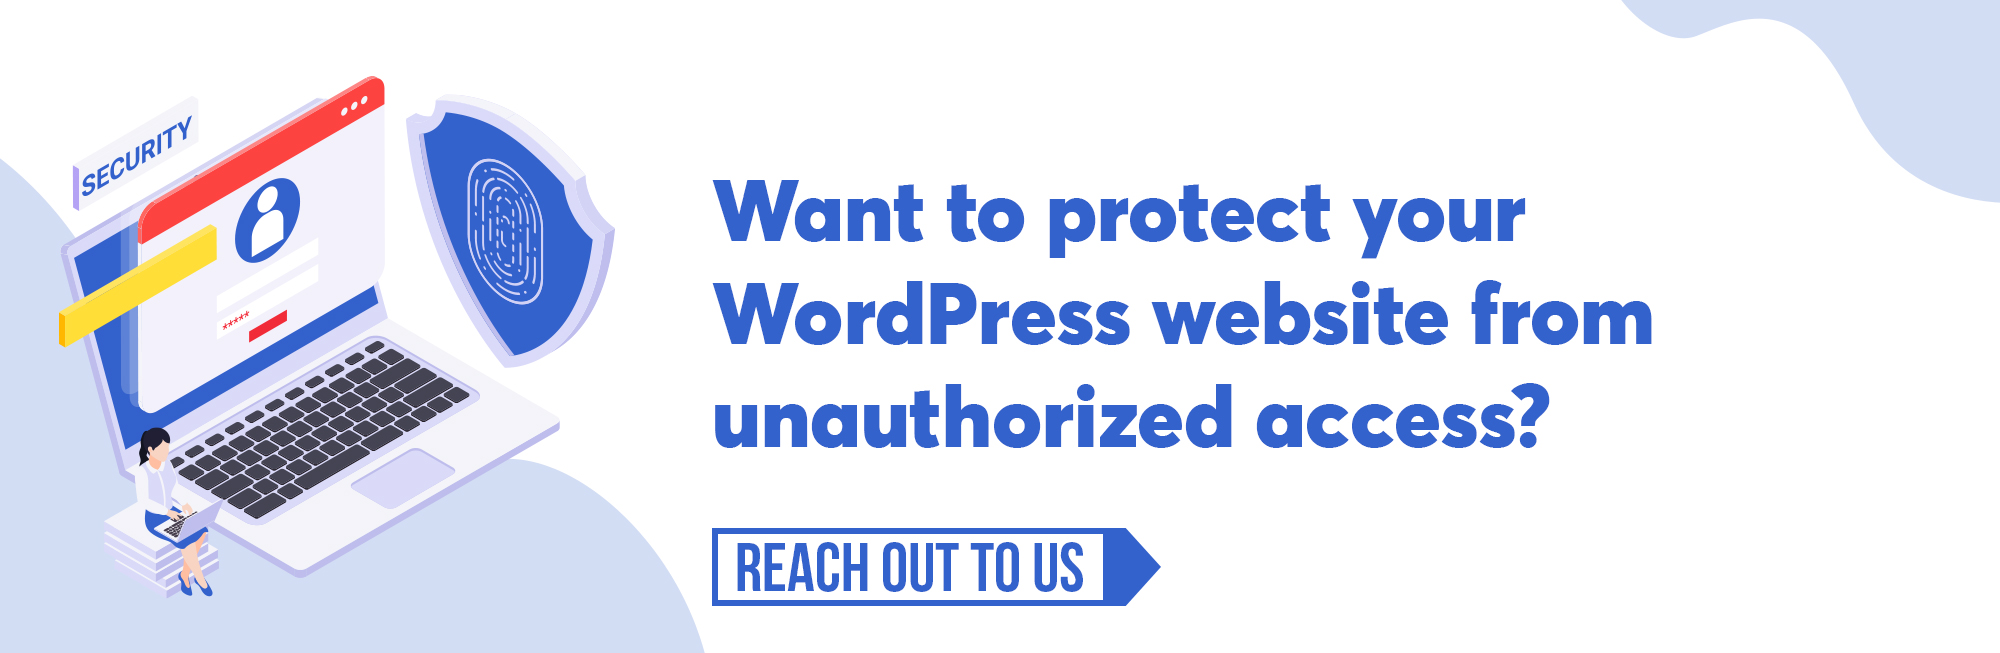 Top-10-Ways-To-Protect-WordPress-Login-From-Unauthorized-Access-CTA